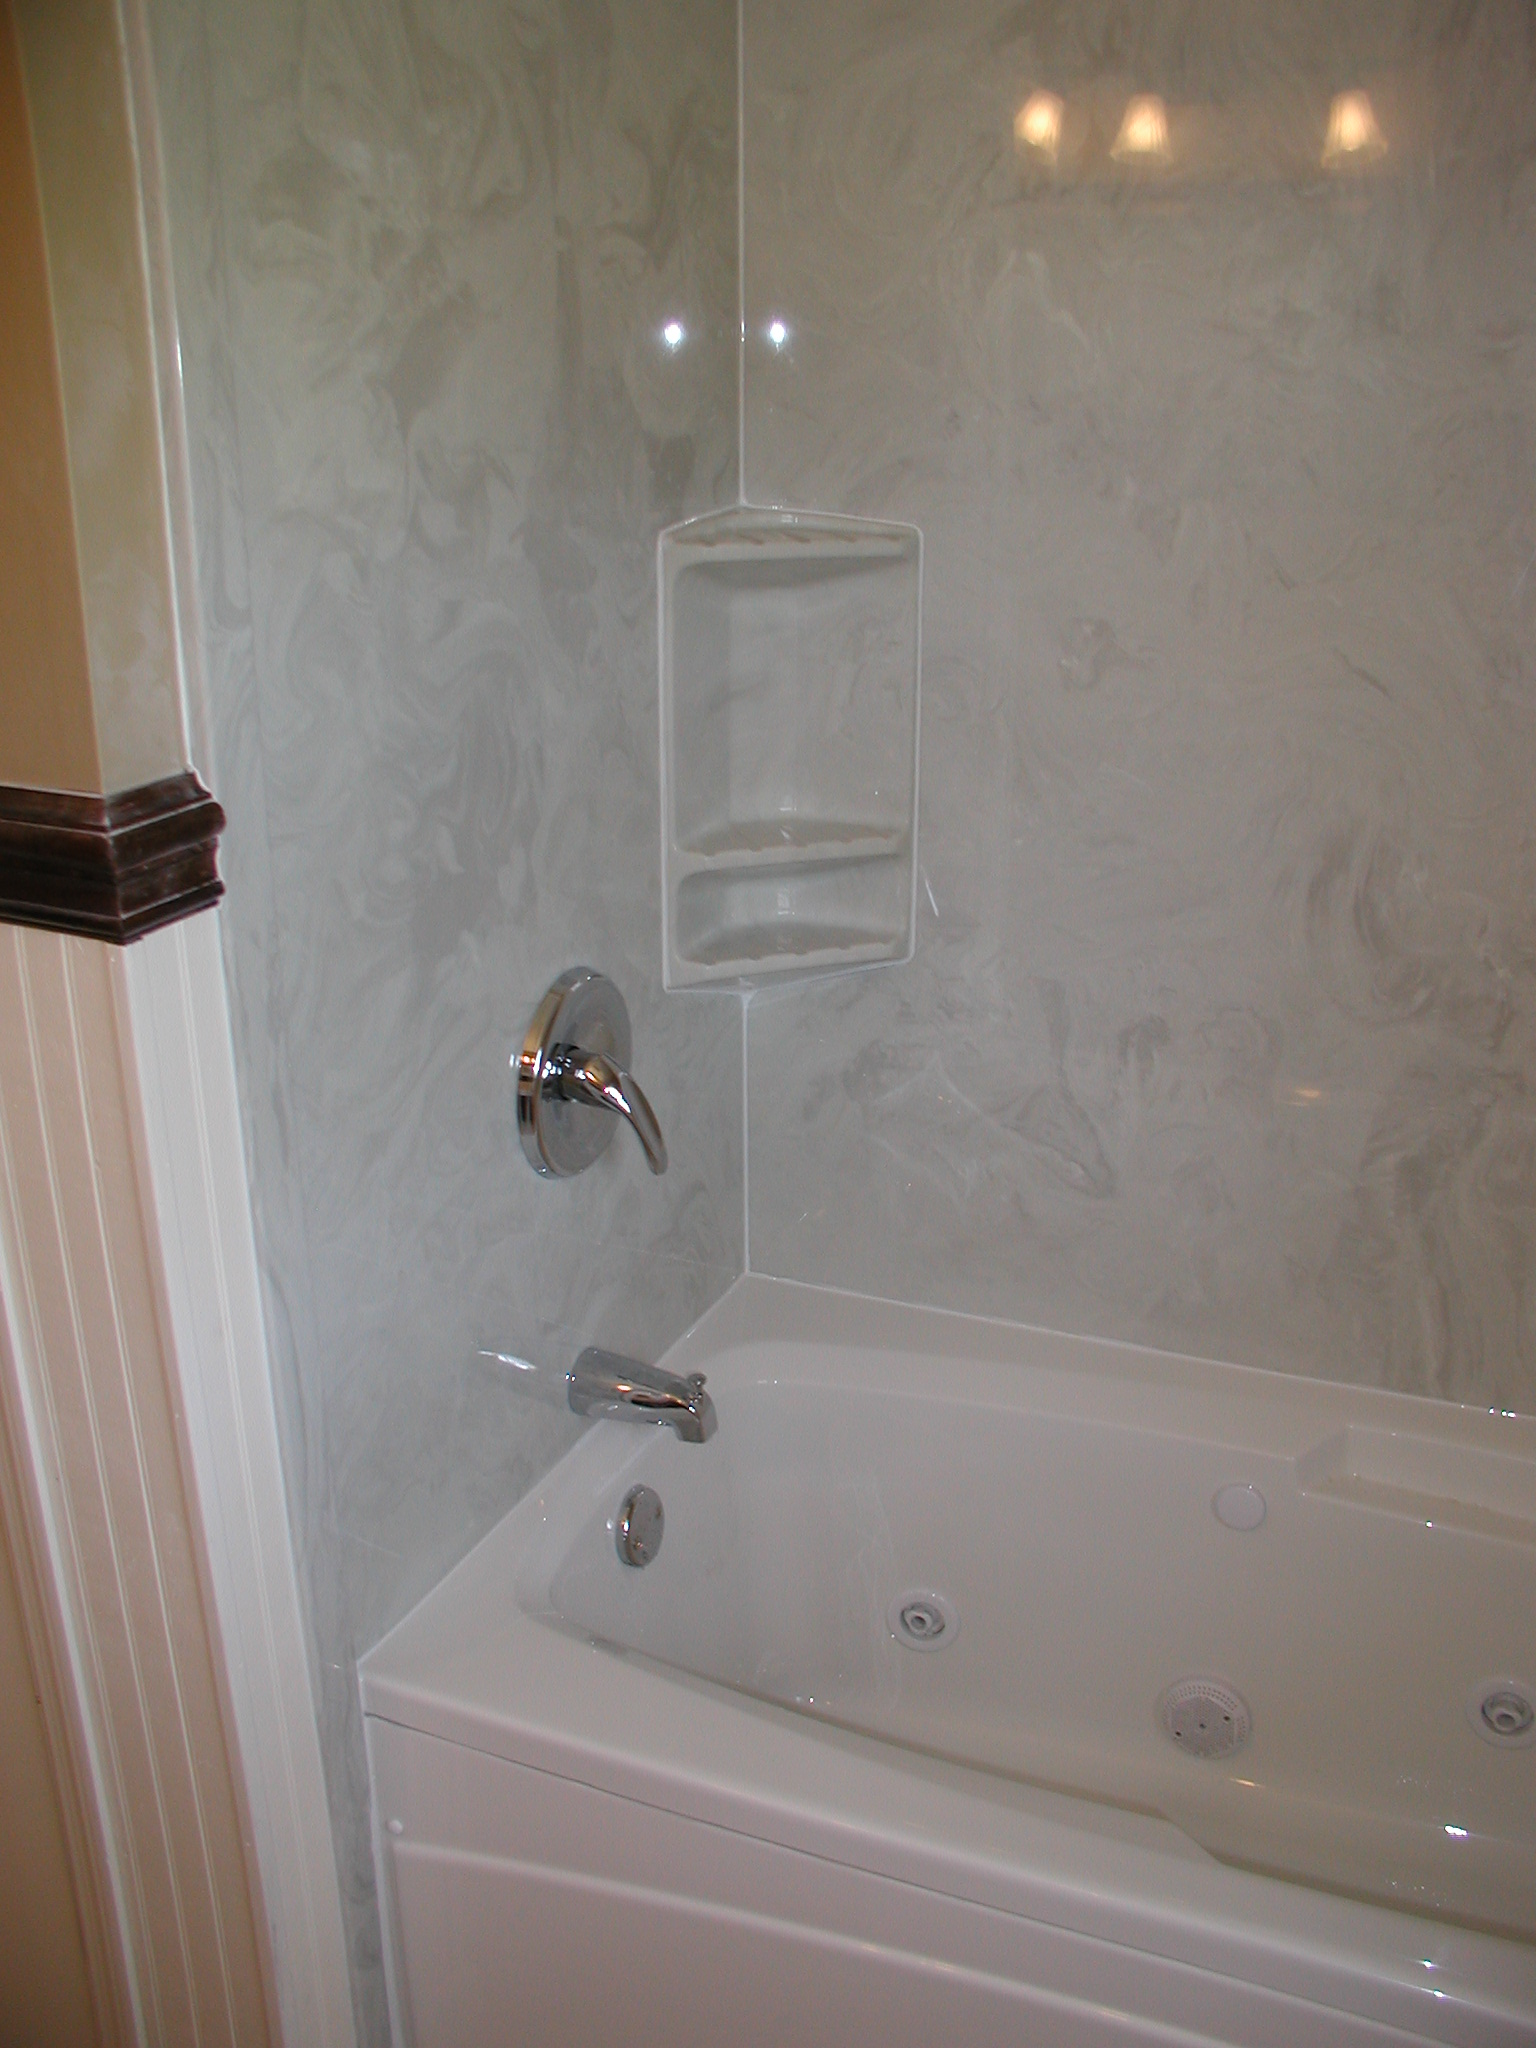 Can you apply ceramic tile over a plastic tub surround? What about